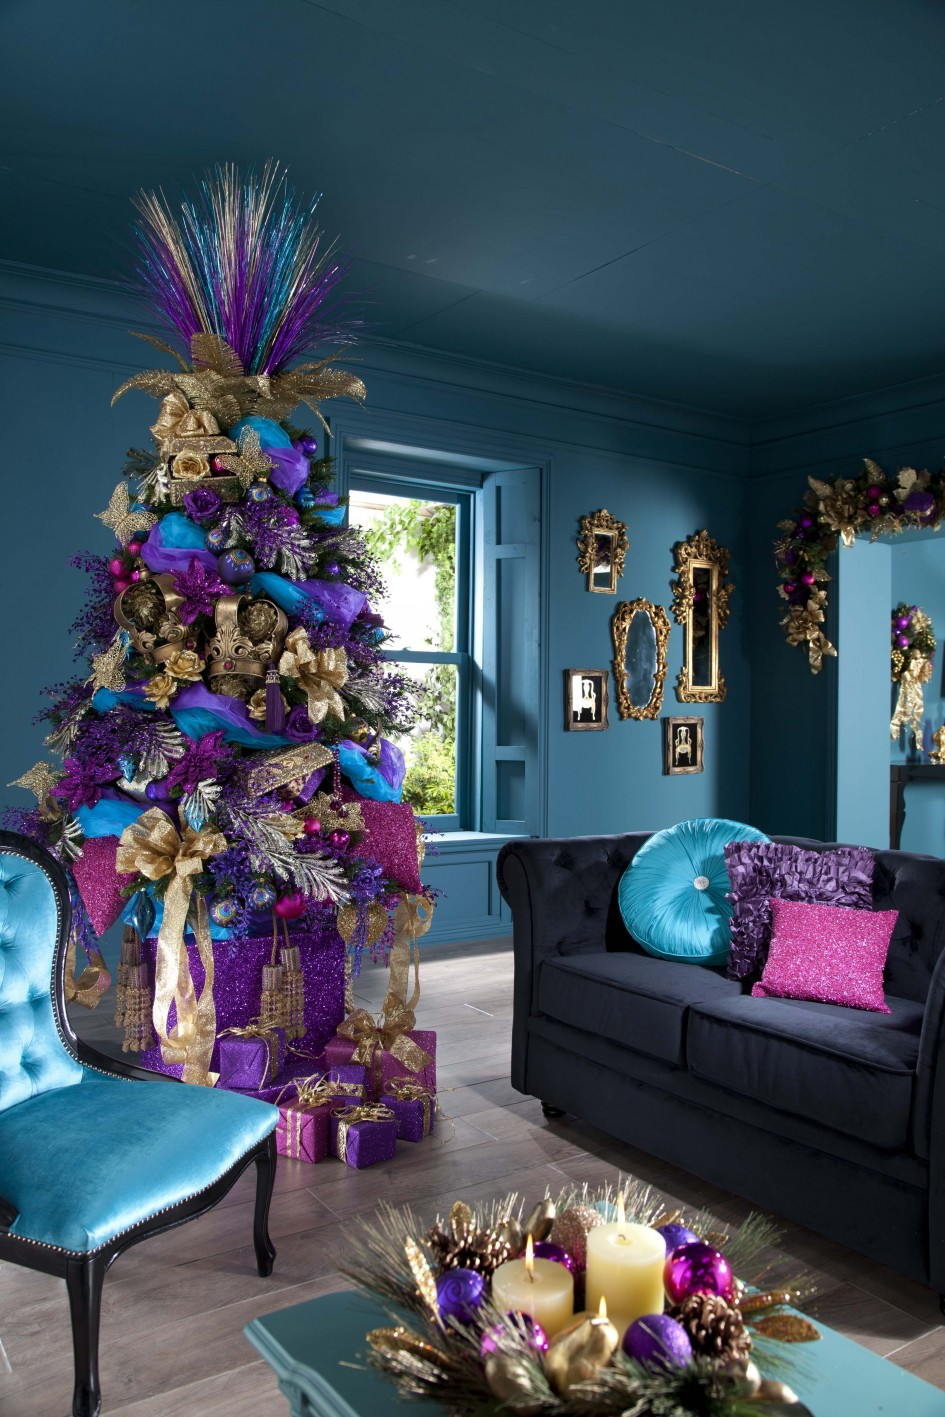 decoration-ideas-extraordinary-colorful-christmas-gift-boxs-like-tree-with-excellent-gray-sofa-also-exclusive-blue-chair-sensational-classic-christmas-tree-decorating-ideas-945x1417